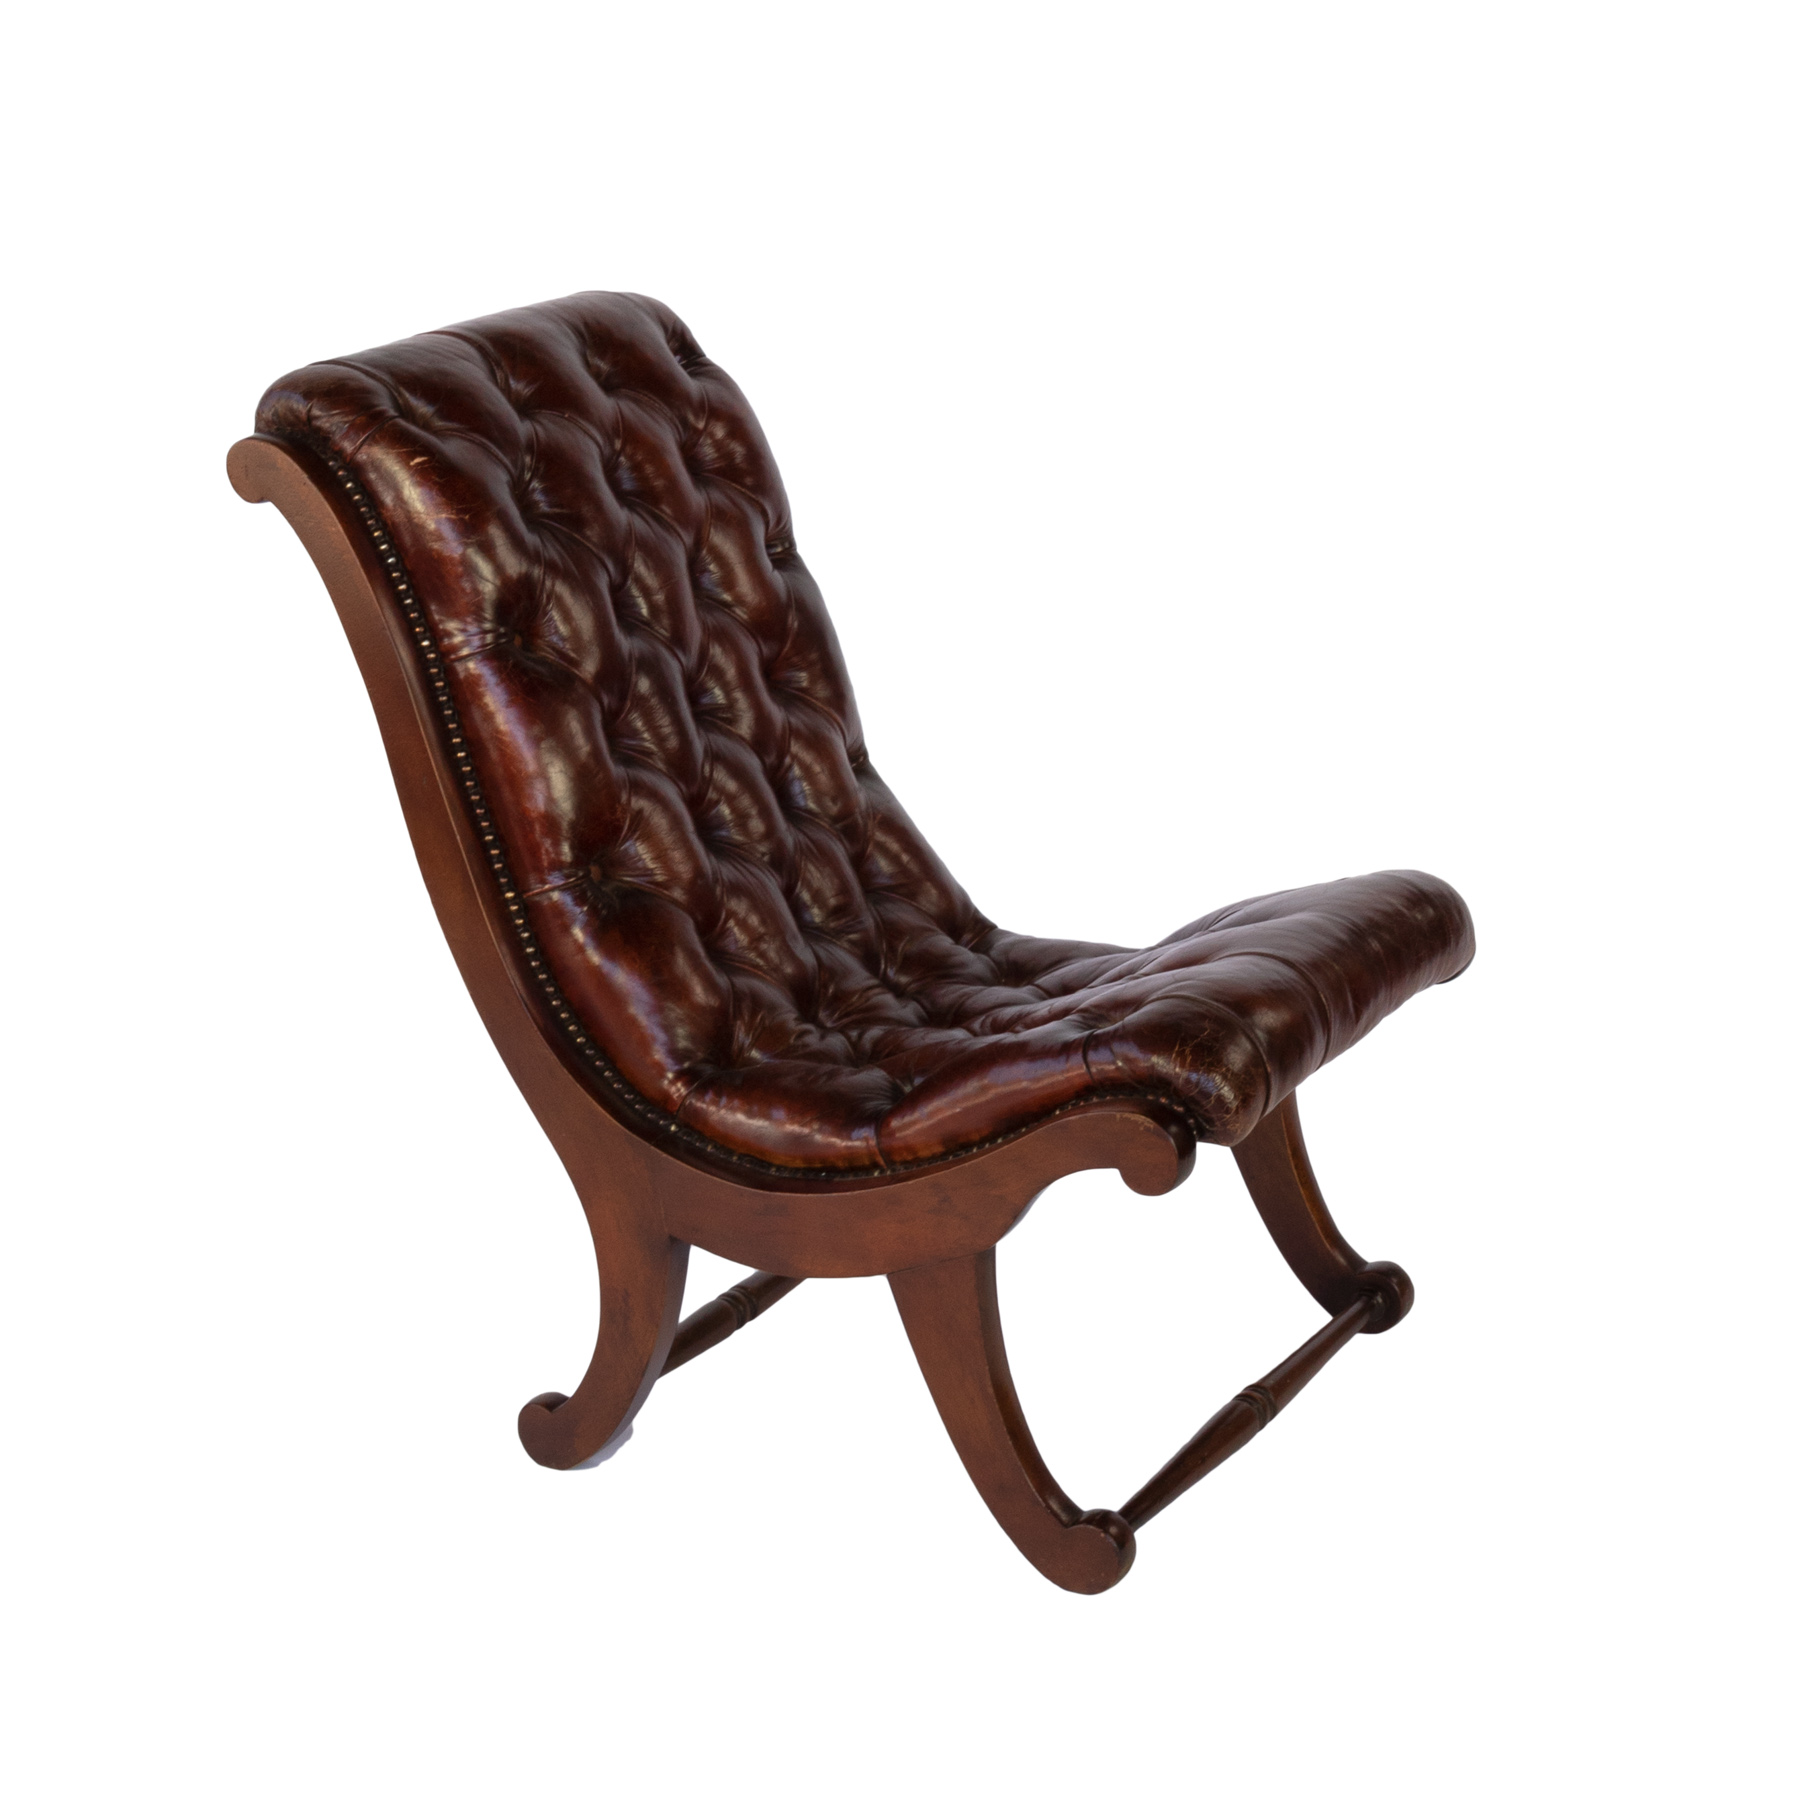 Terrific Tufted Red Leather And Mahogany Slipper Chair With Nailhead Trim English Circa 1900 Andrewgaddart Wooden Chair Designs For Living Room Andrewgaddartcom